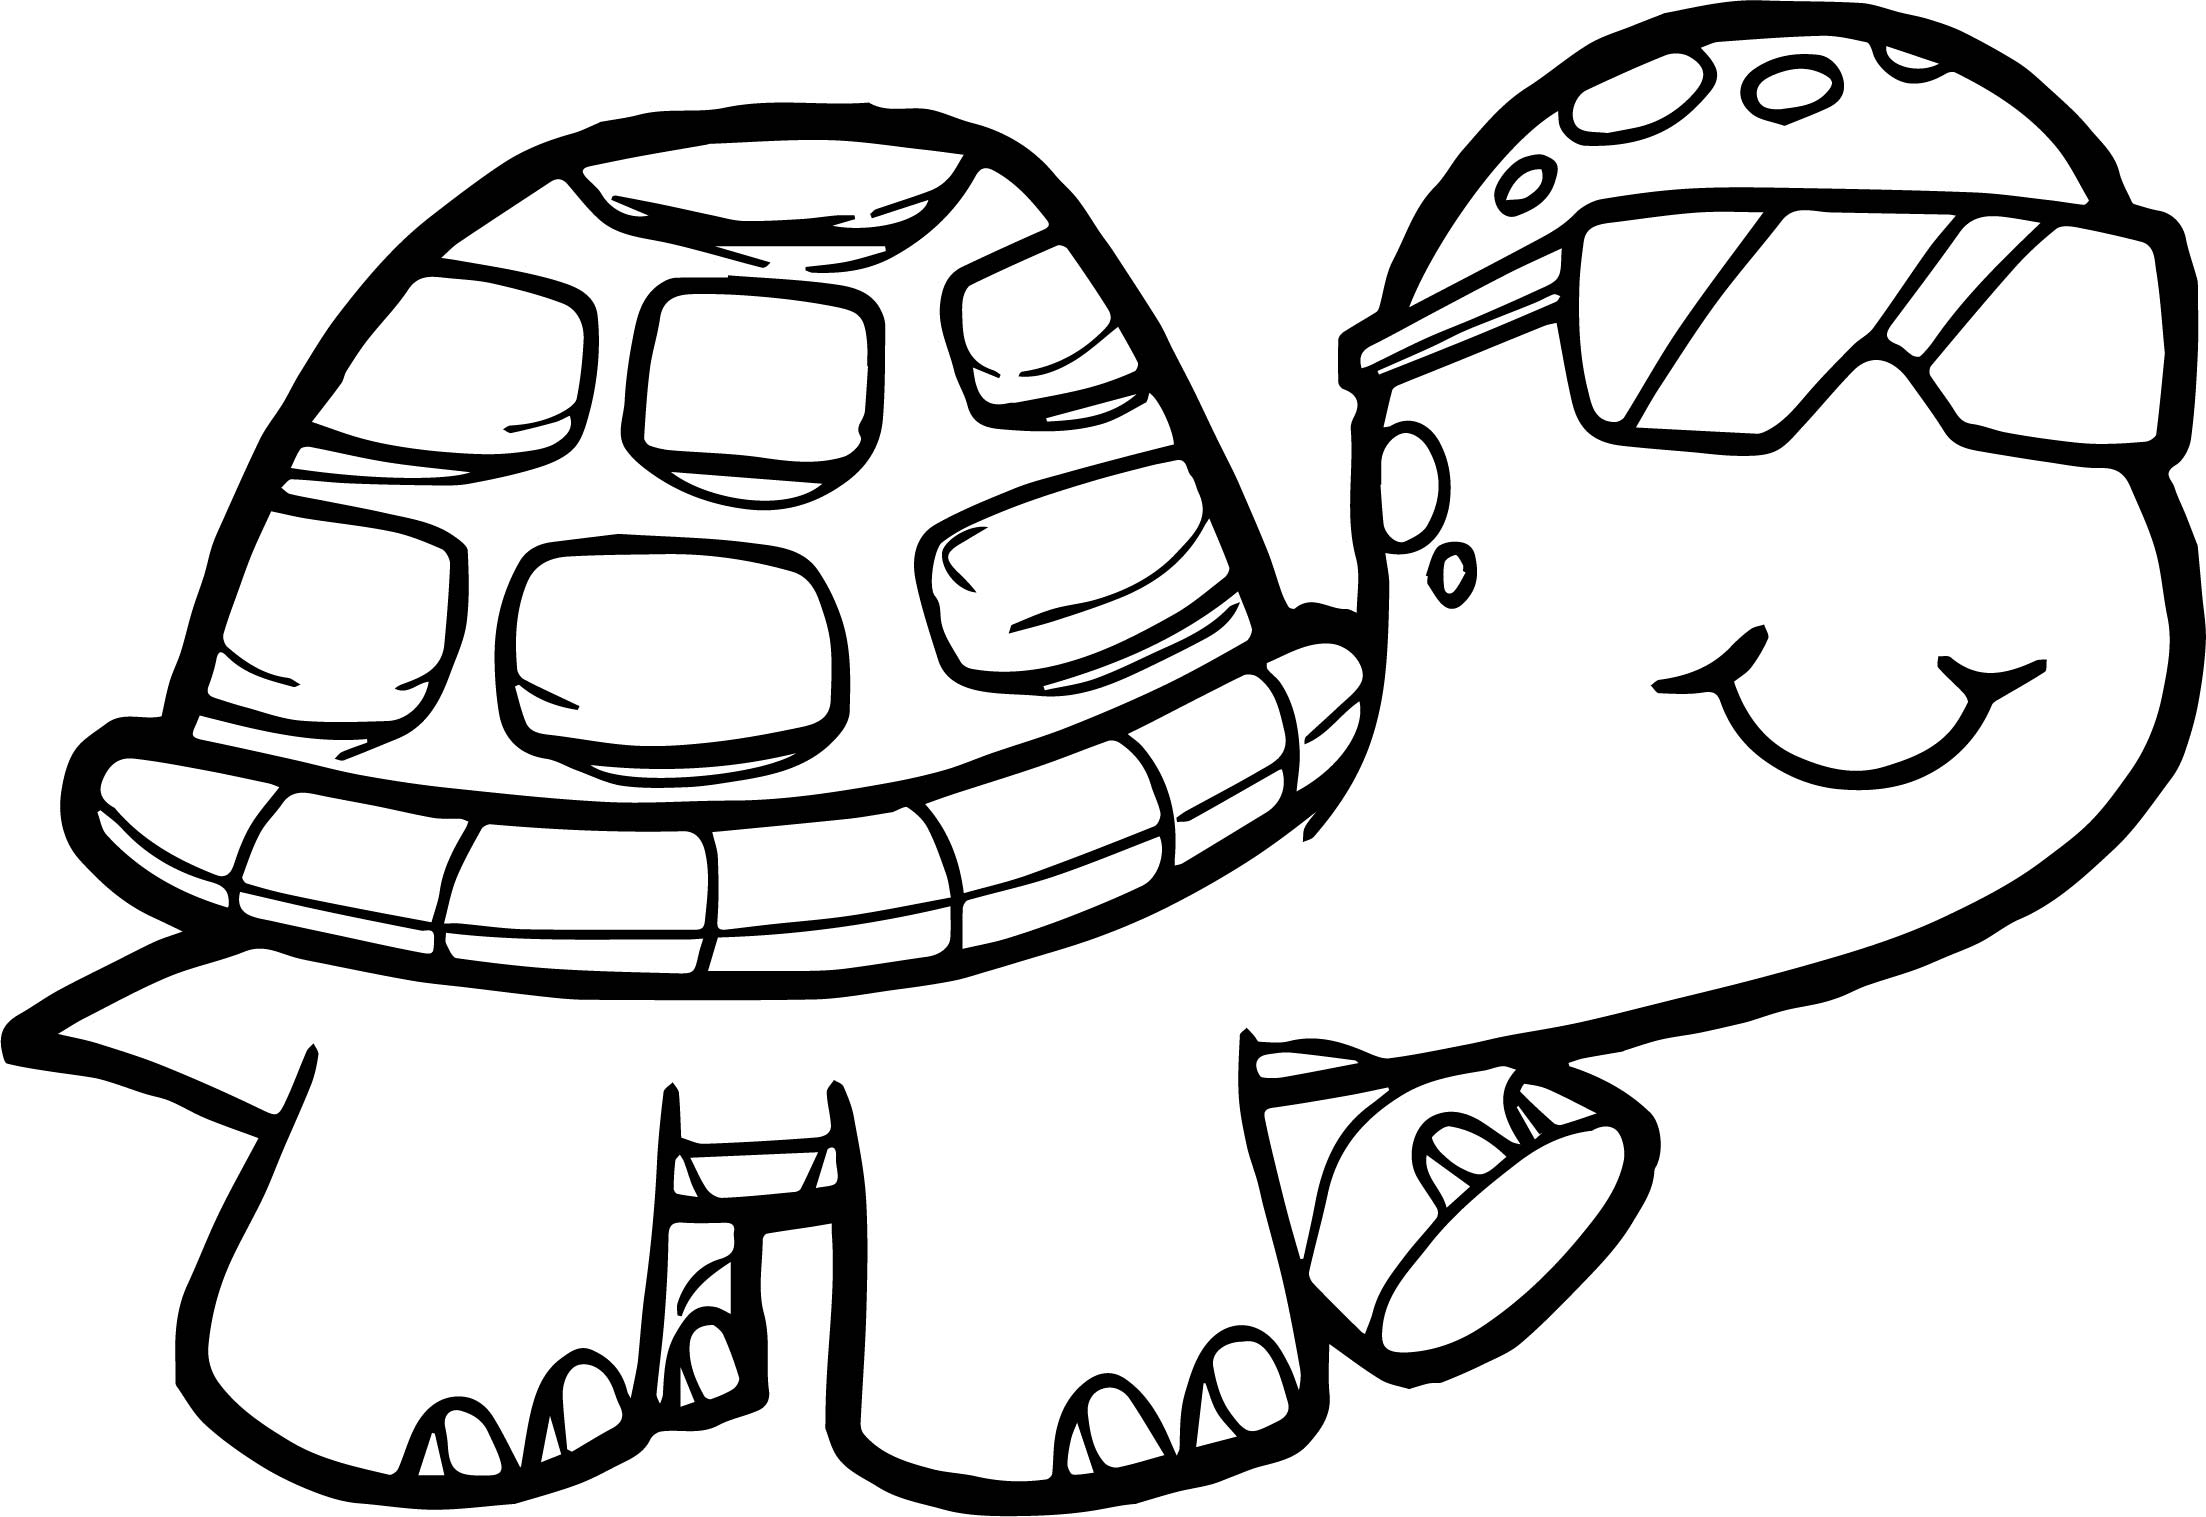 turtle coloring book page print download turtle coloring pages as the coloring turtle book page